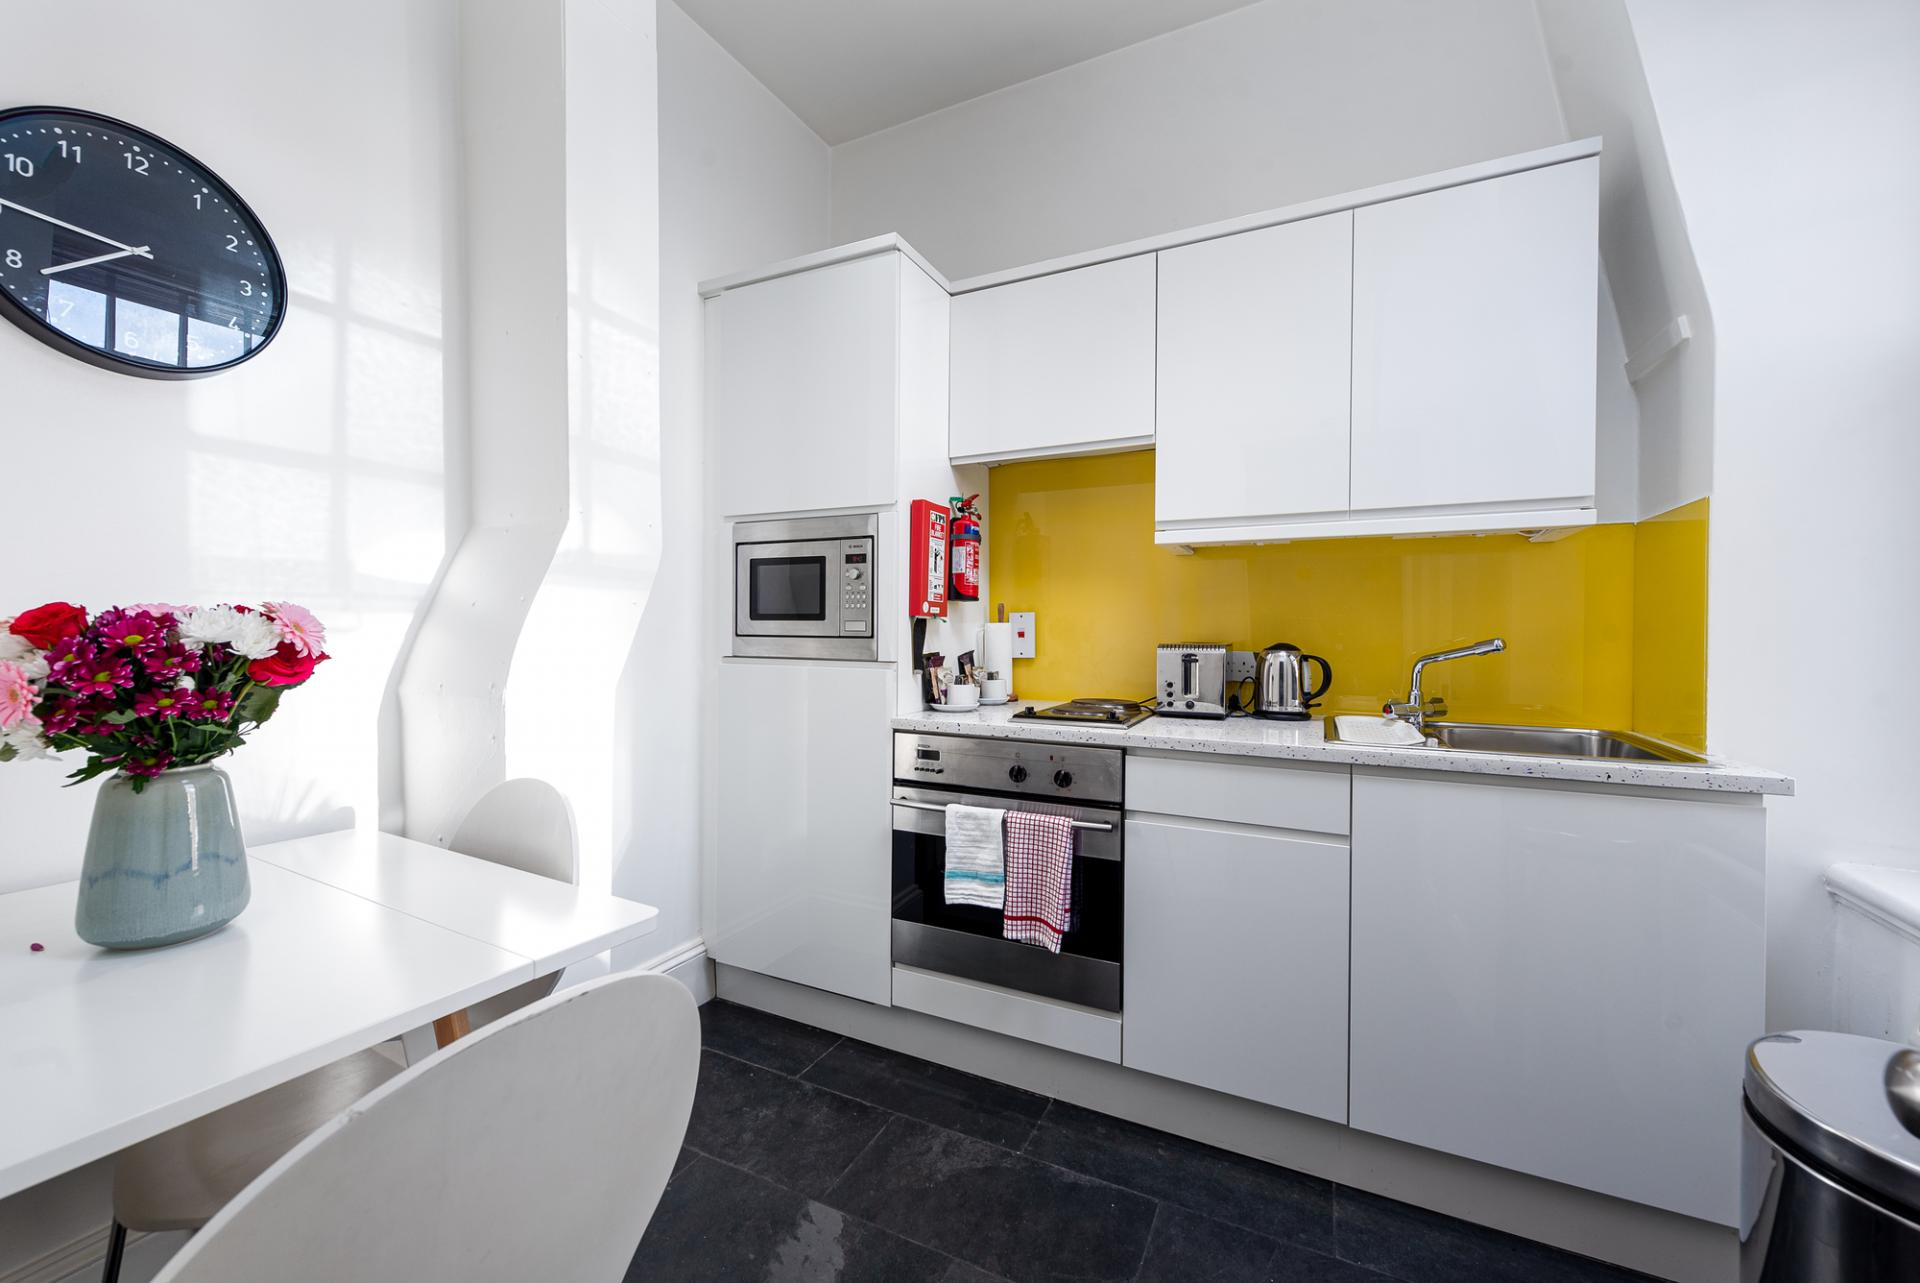 Kitchen at Draycott Place Serviced Apartments, Chelsea, London - Citybase Apartments